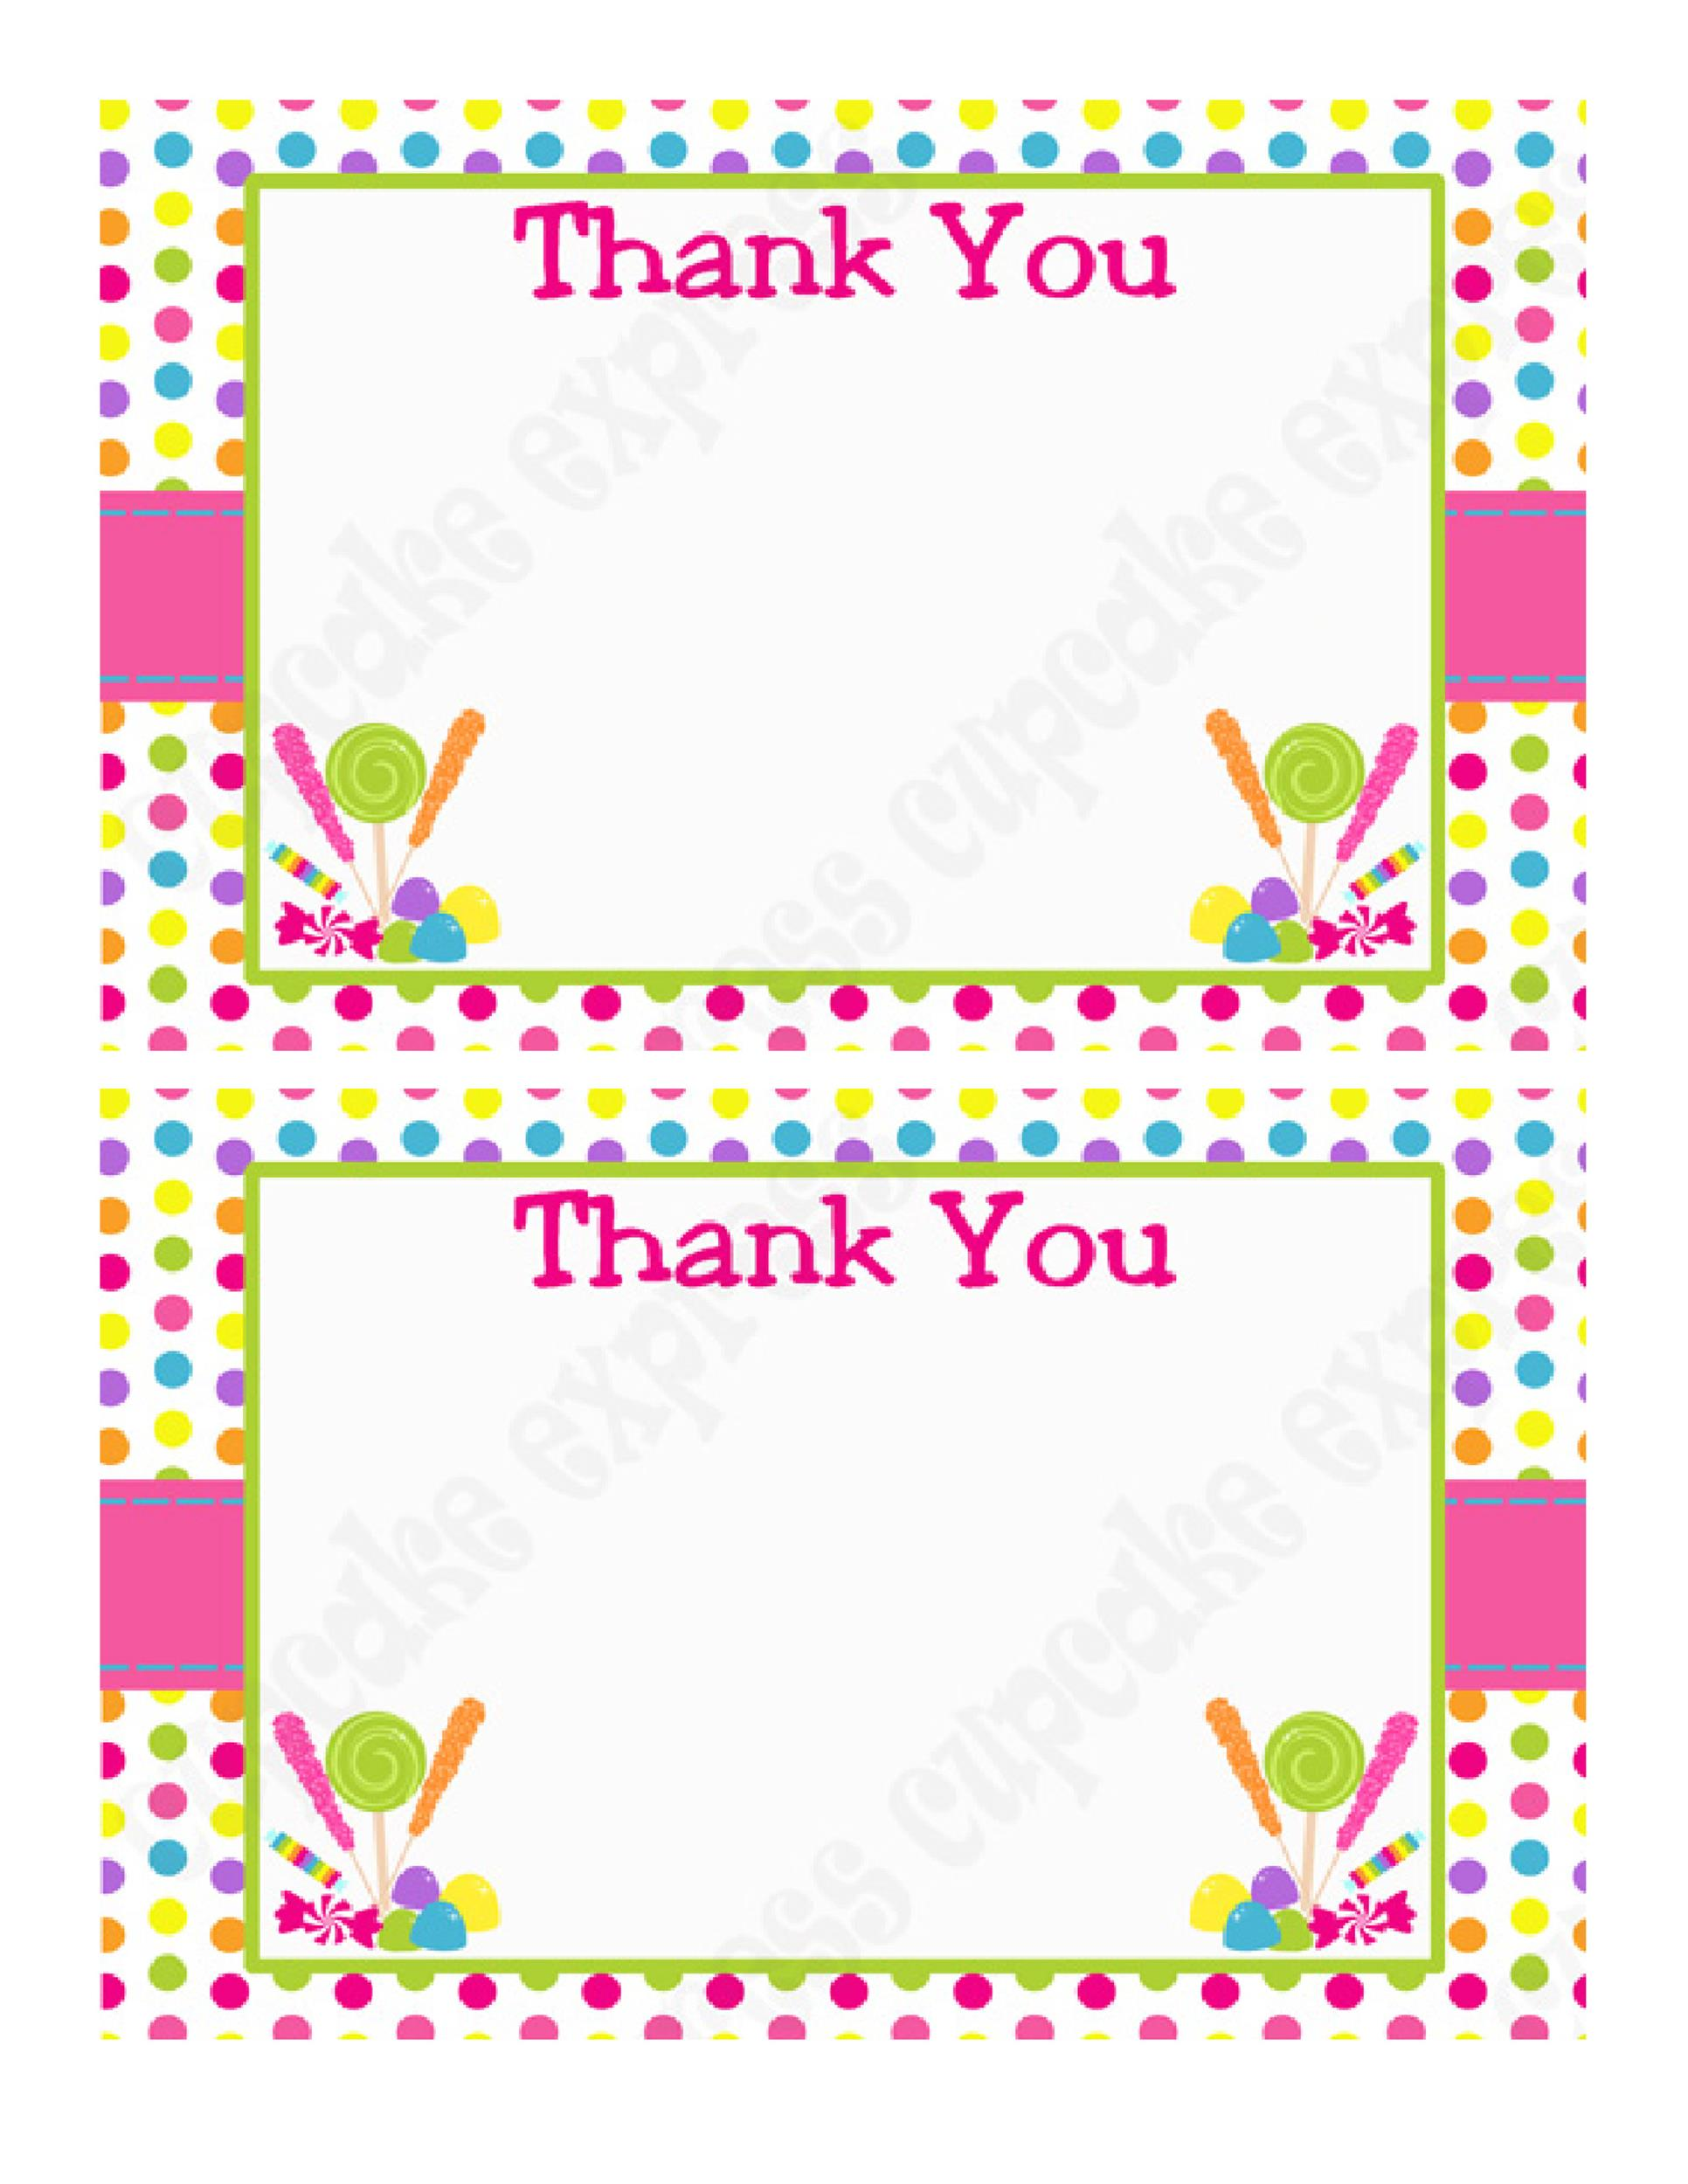 graphic regarding Free Printable Thank You Card Template identify 30+ Absolutely free Printable Thank On your own Card Templates (Marriage ceremony